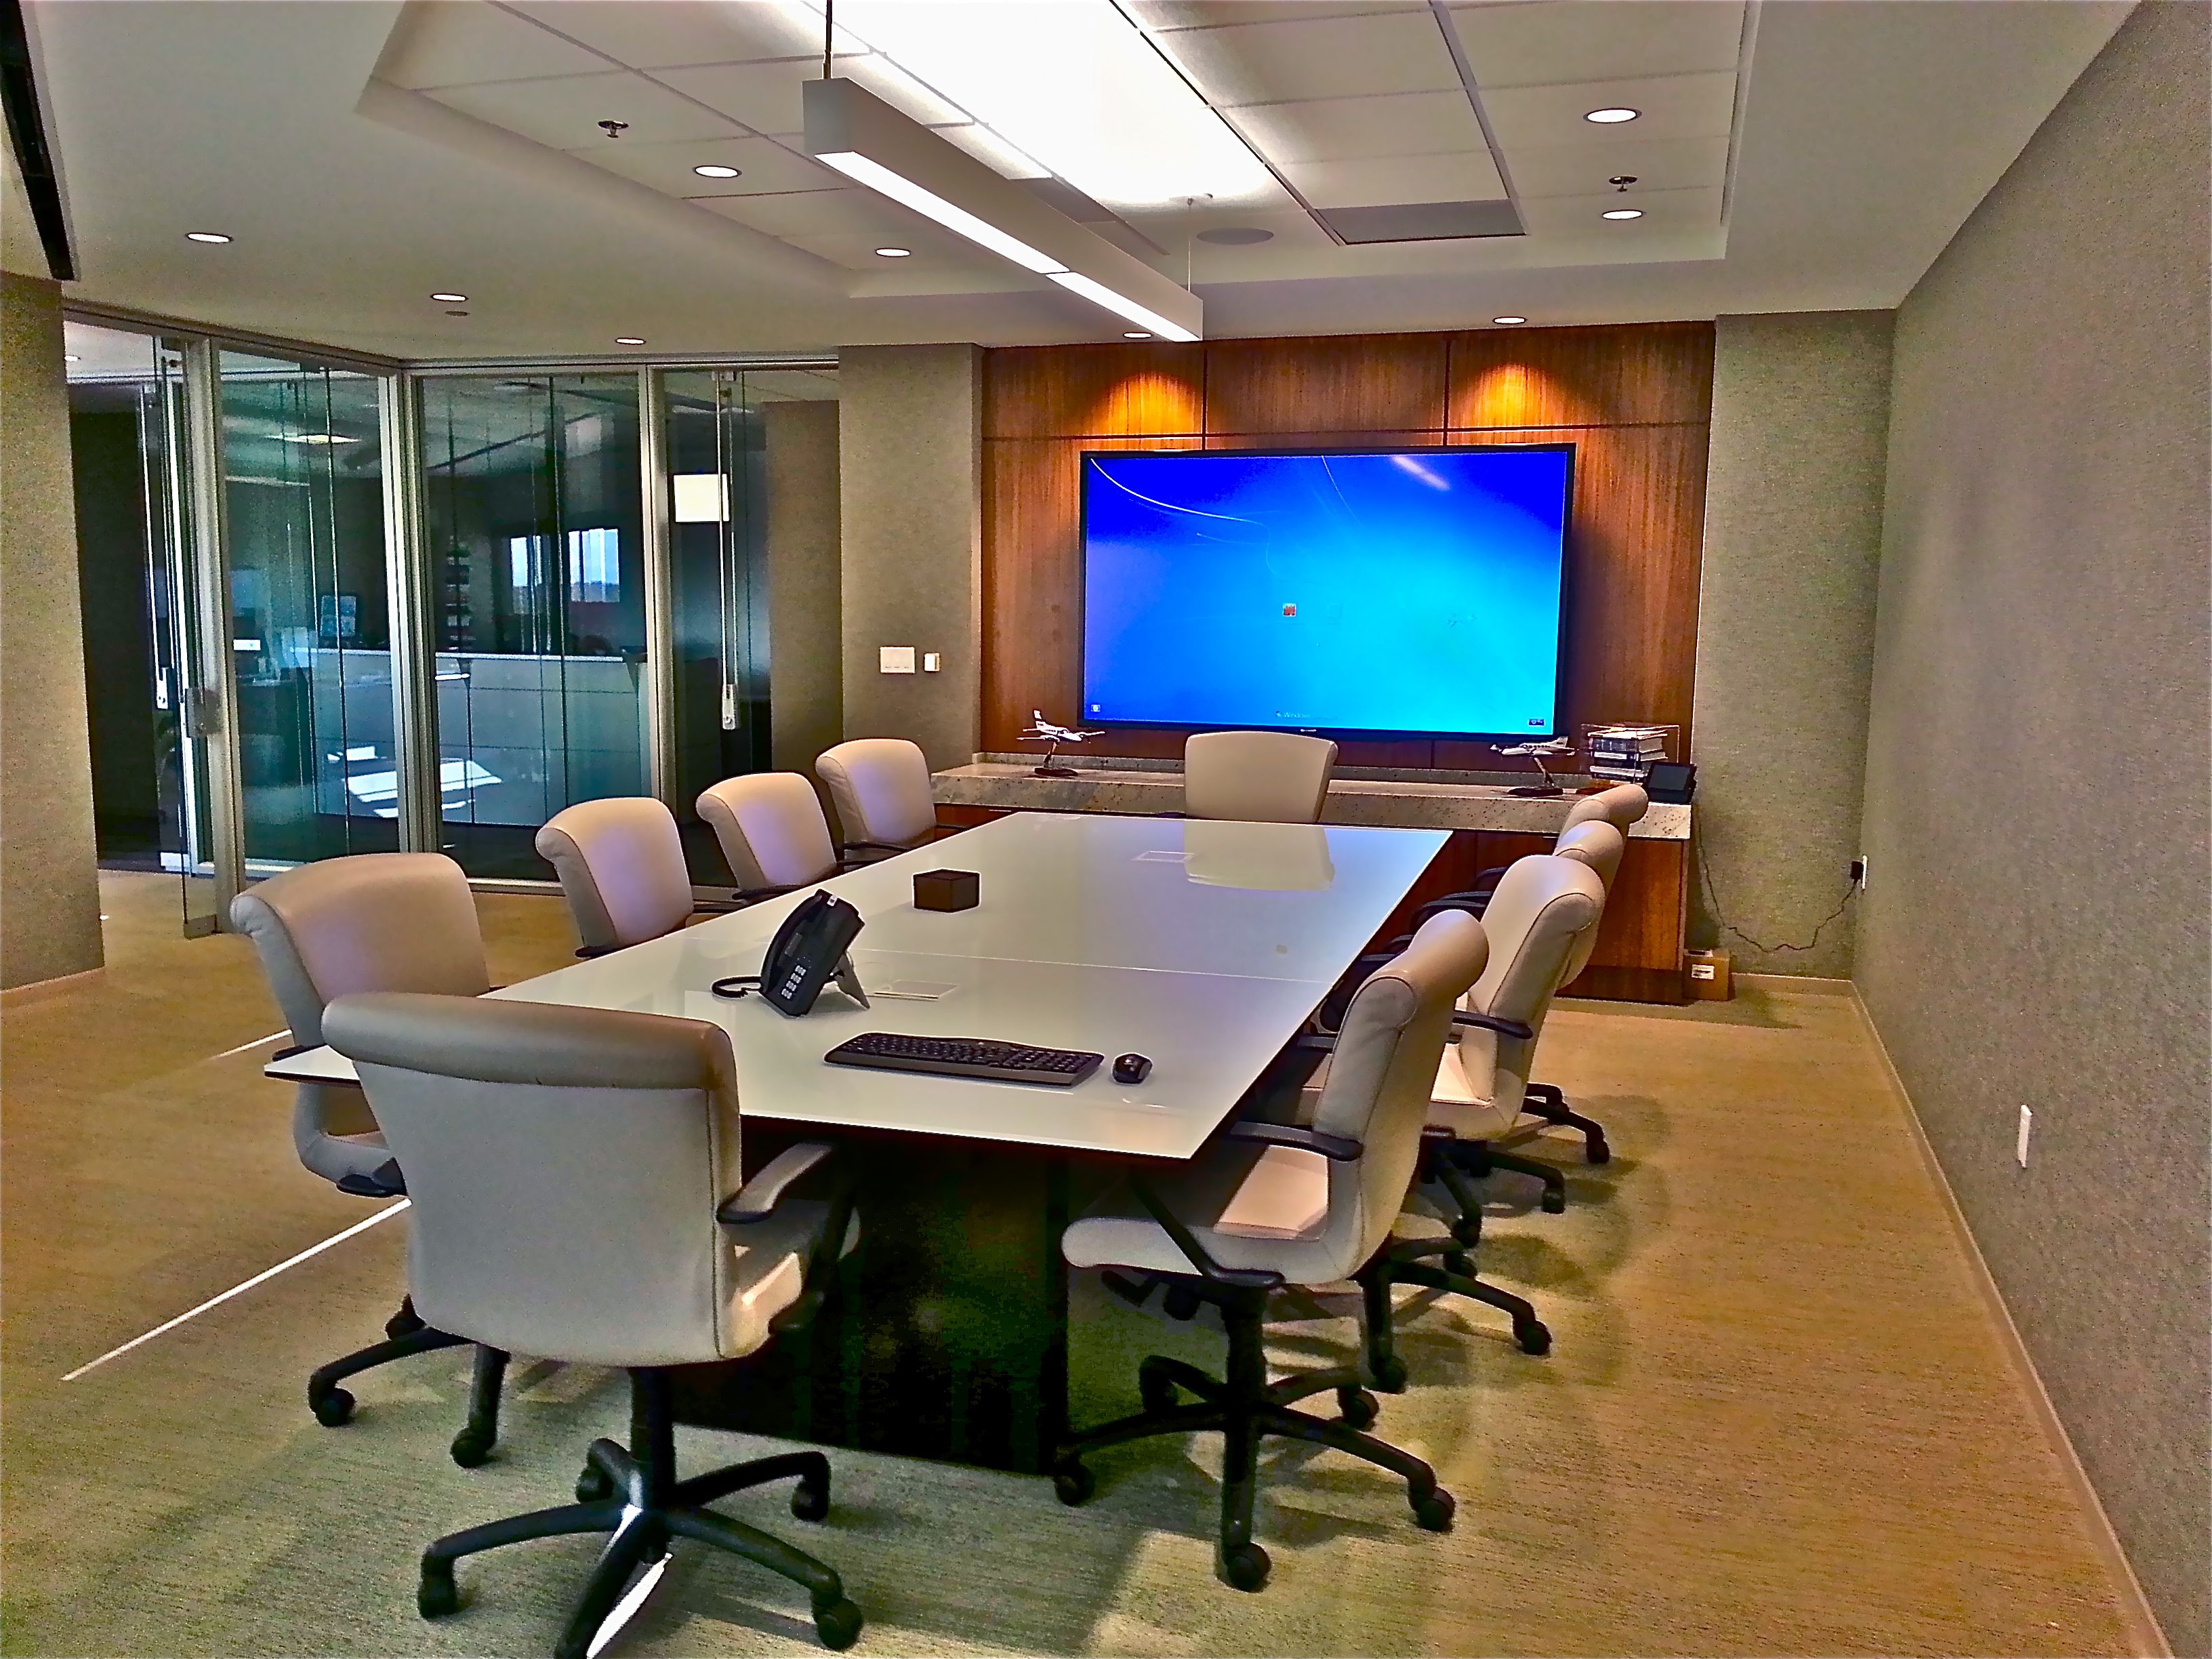 Houston Commercial Audio Visual Av System Install Office Design Home Theatre Automation Pre Wiring Retrof Boardroom With Advanced Video Systems